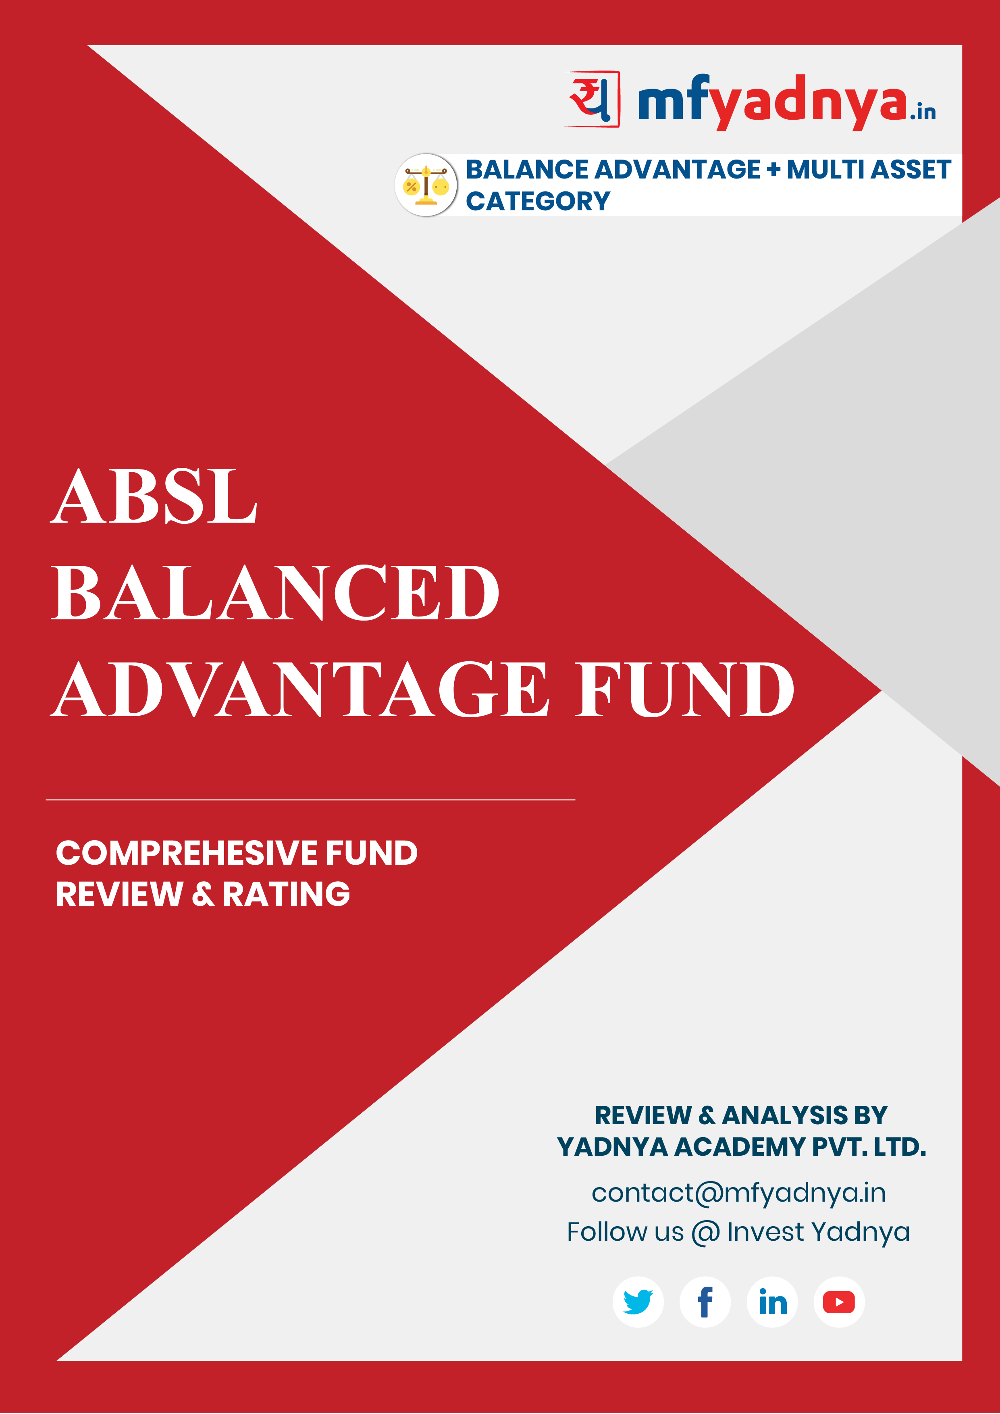 This e-book offers a comprehensive mutual fund review of ABSL Balanced Advantage Fund . It reviews the fund's return, ratio, allocation etc. ✔ Detailed Mutual Fund Analysis ✔ Latest Research Reports